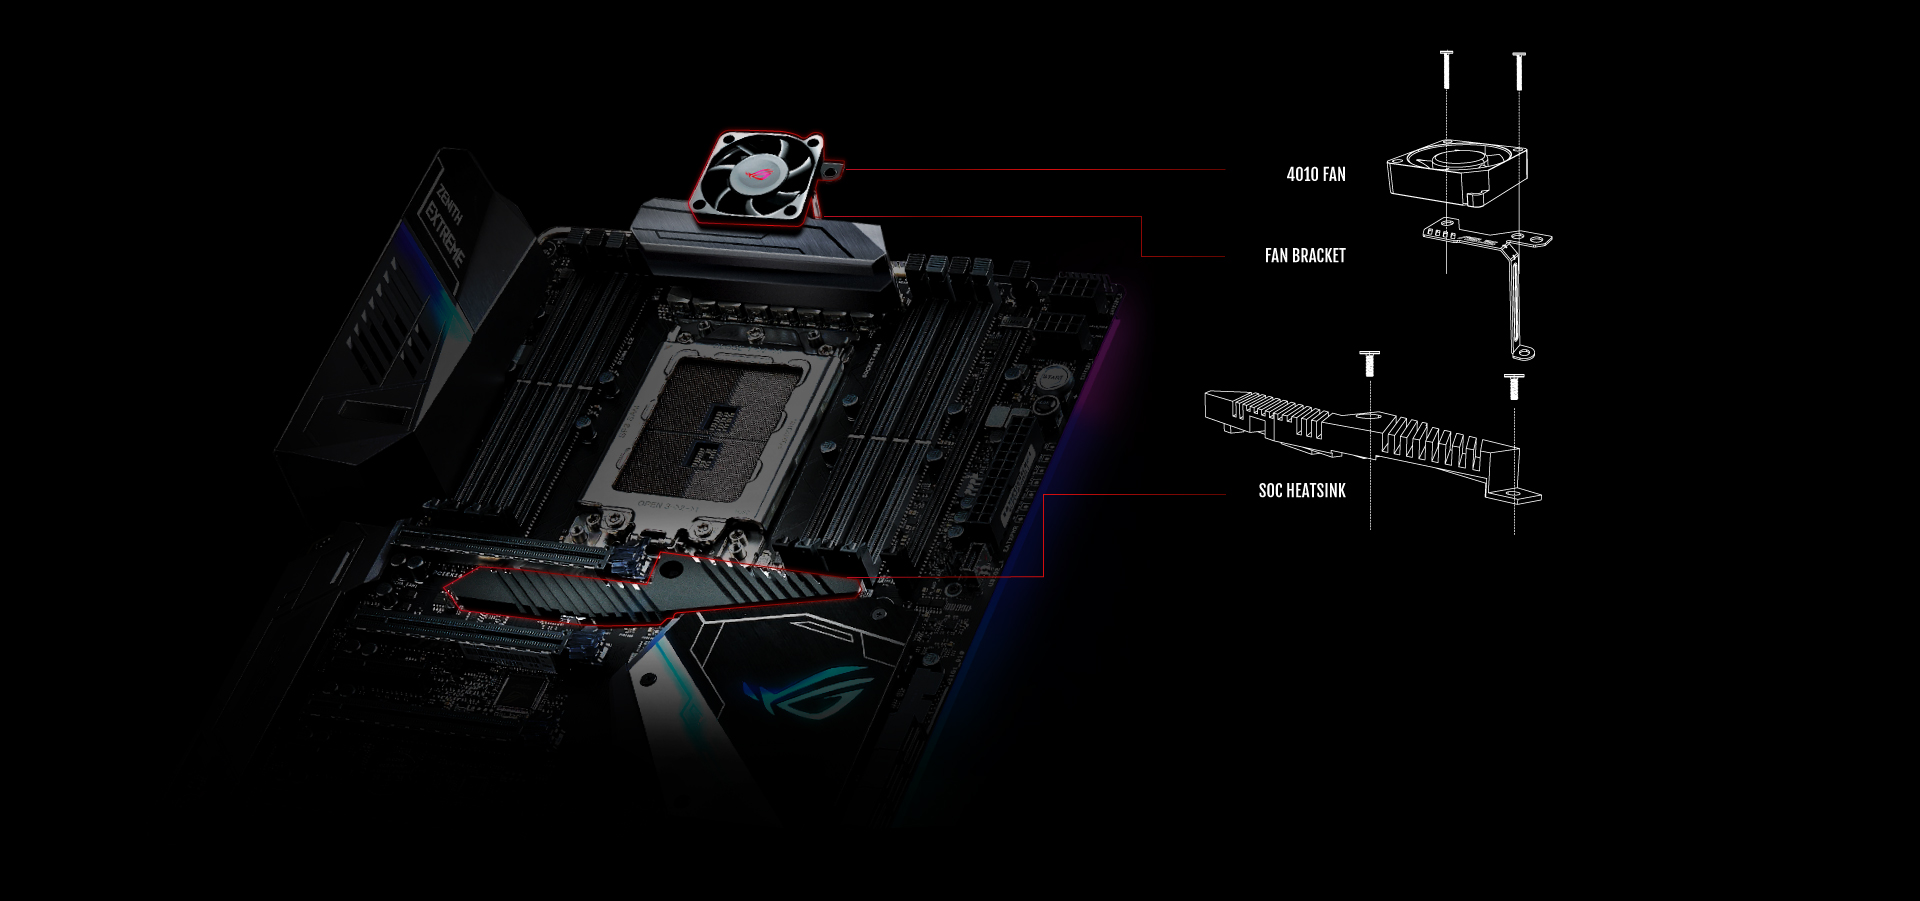 Rog Zenith Extreme Motherboards Asus Global Kato N Scale Printed Circuit Board Pcb Lighting Kit For Up Water Reload With Cooling